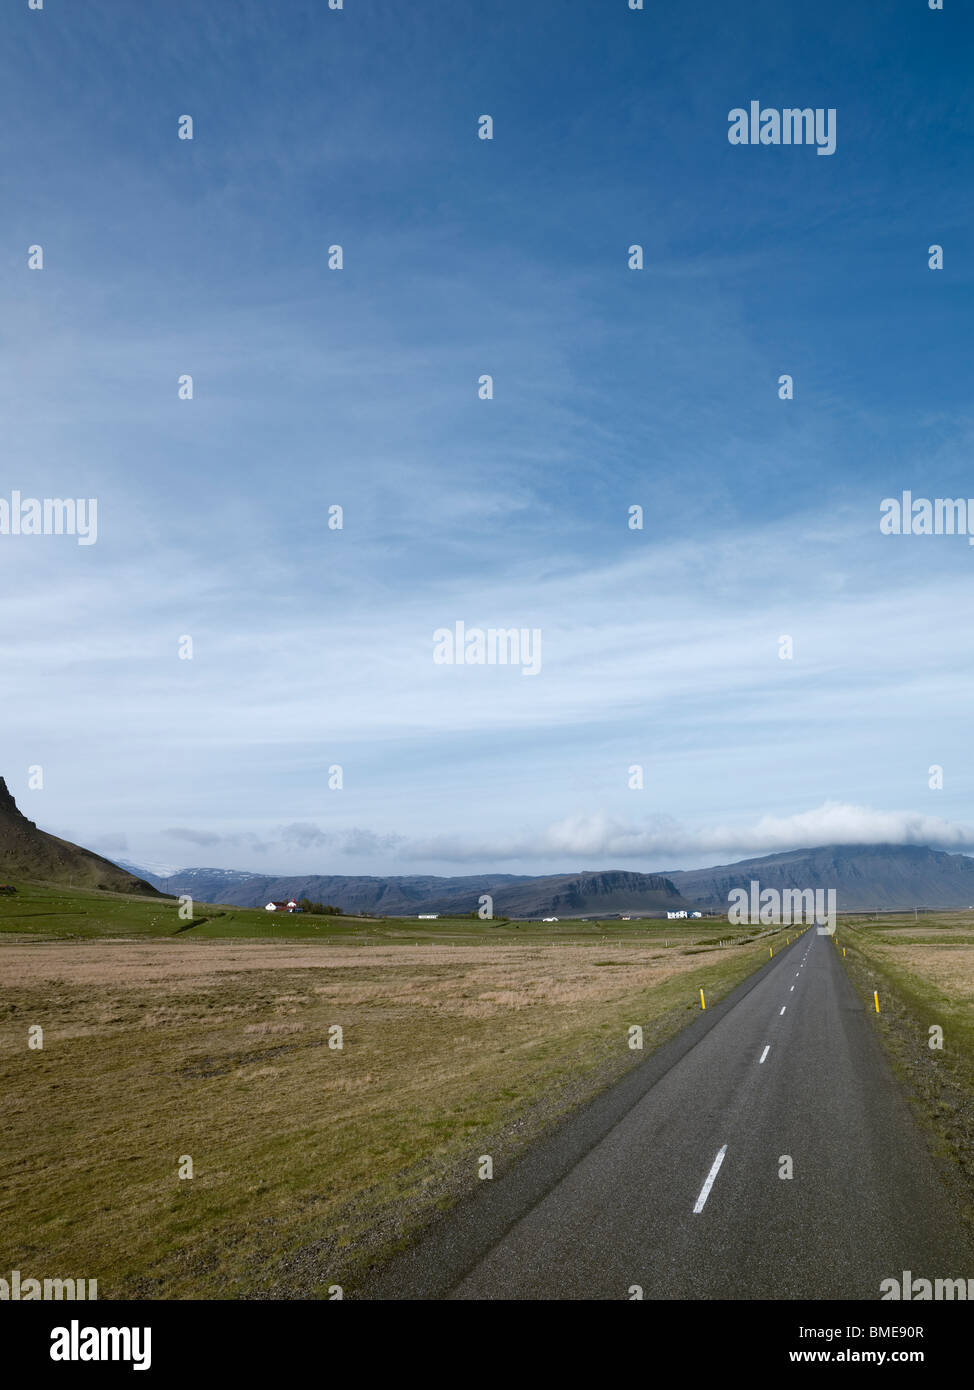 Straight country road - Stock Image